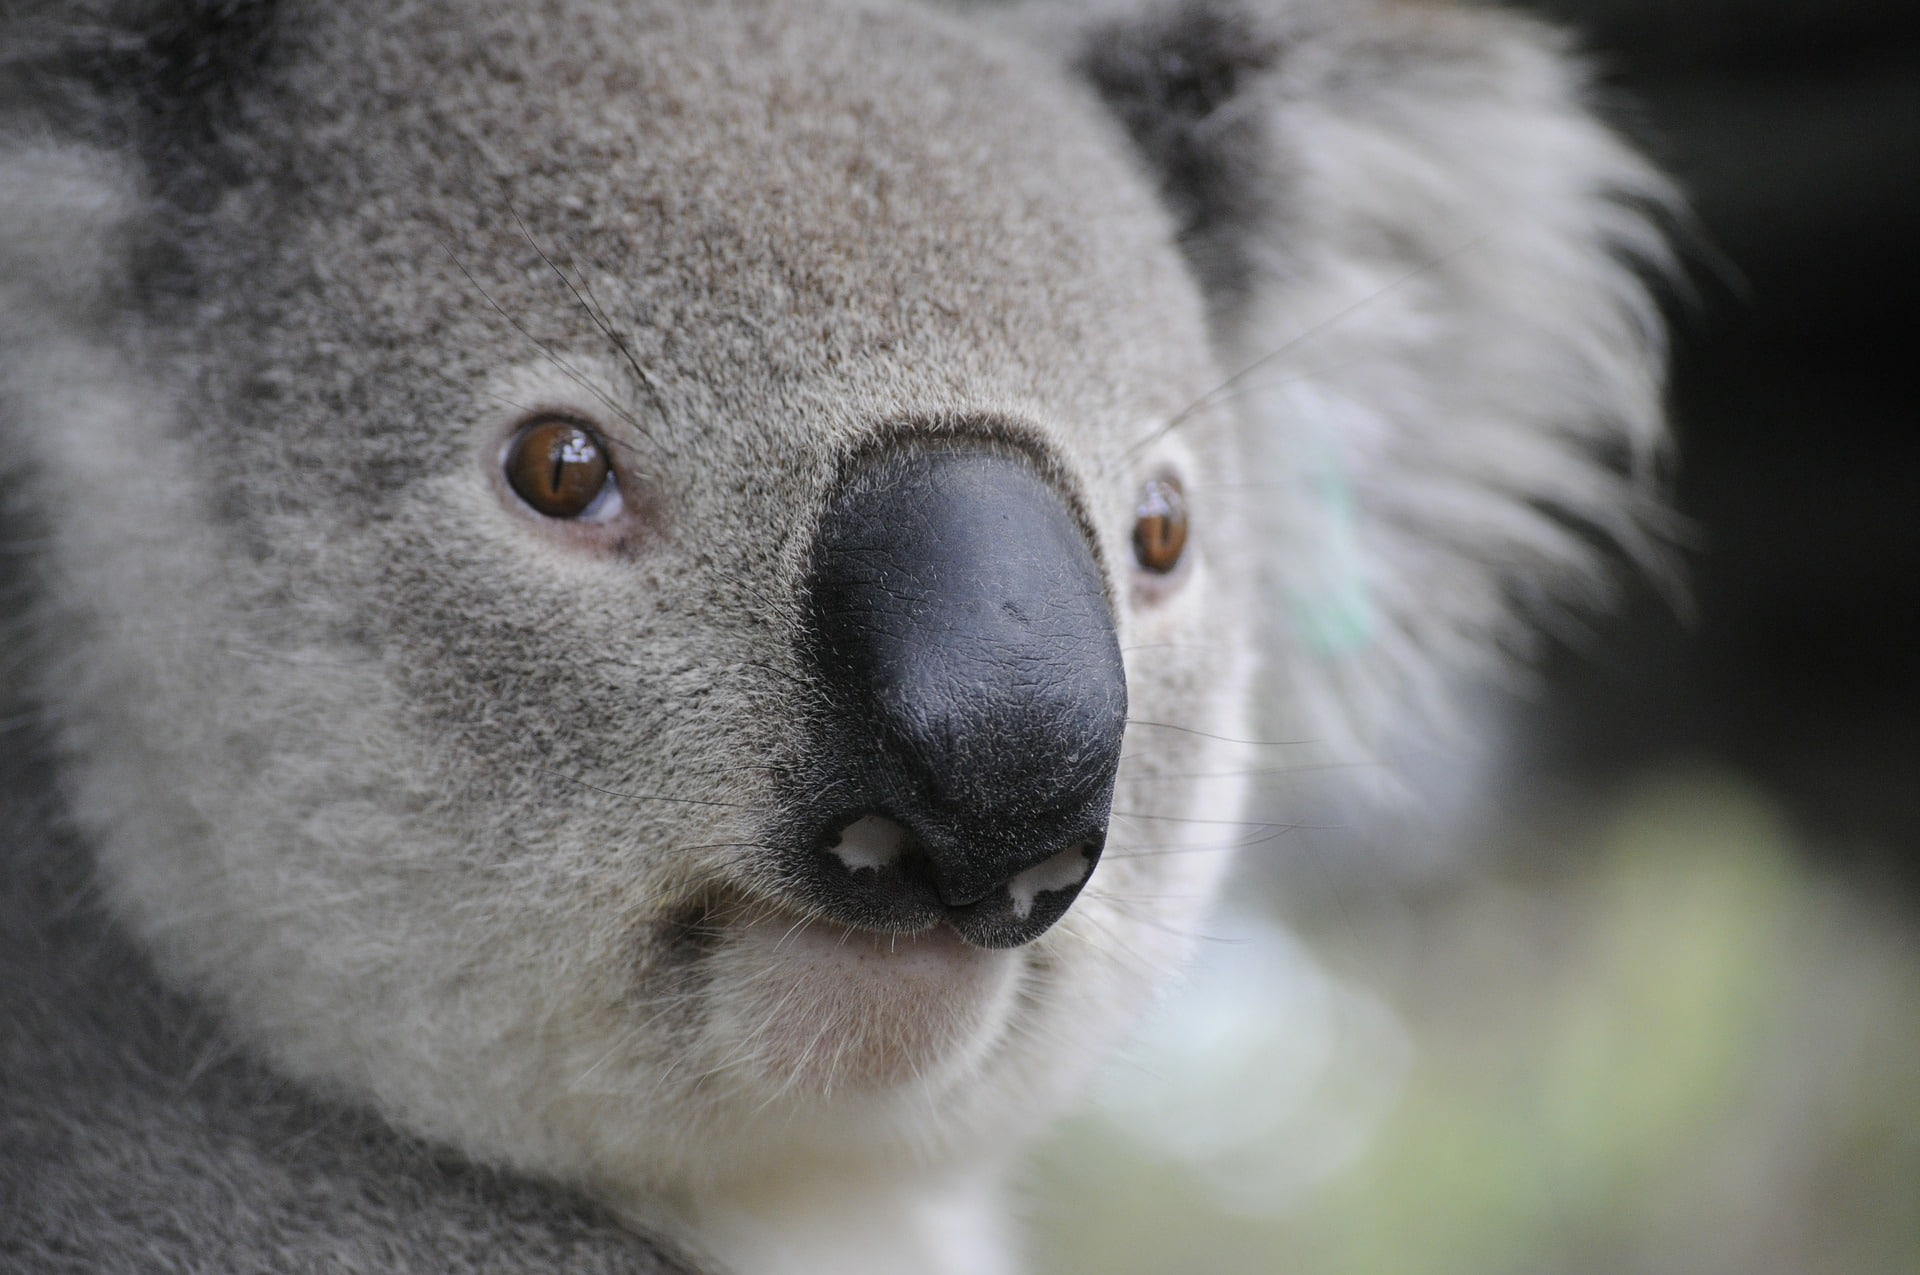 How to Make Peace With The Adorable Koalas Your Boss Hired by Toria  Sheffield